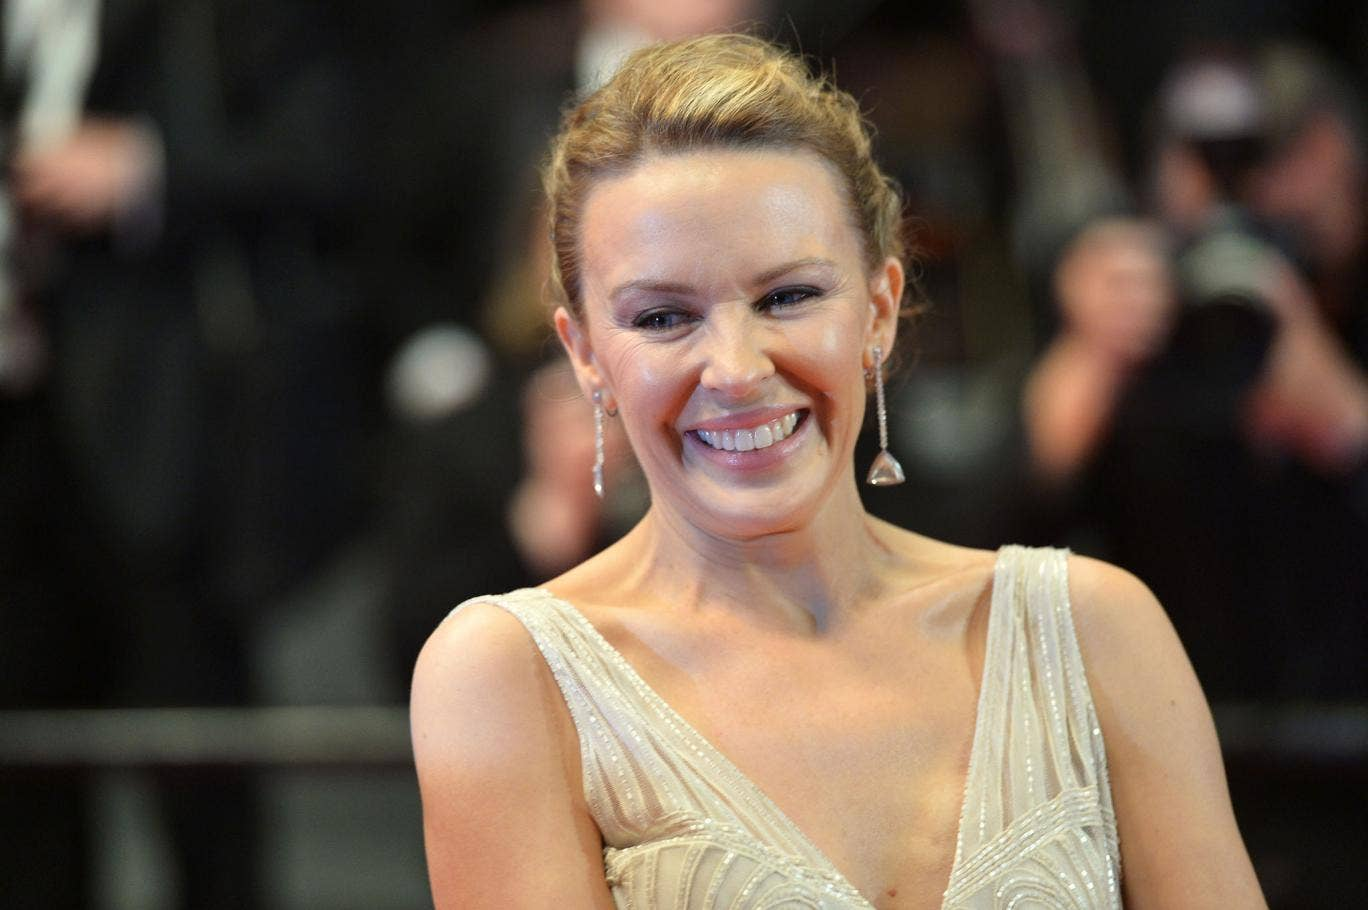 Kylie Minogue at the Cannes film festival 2013